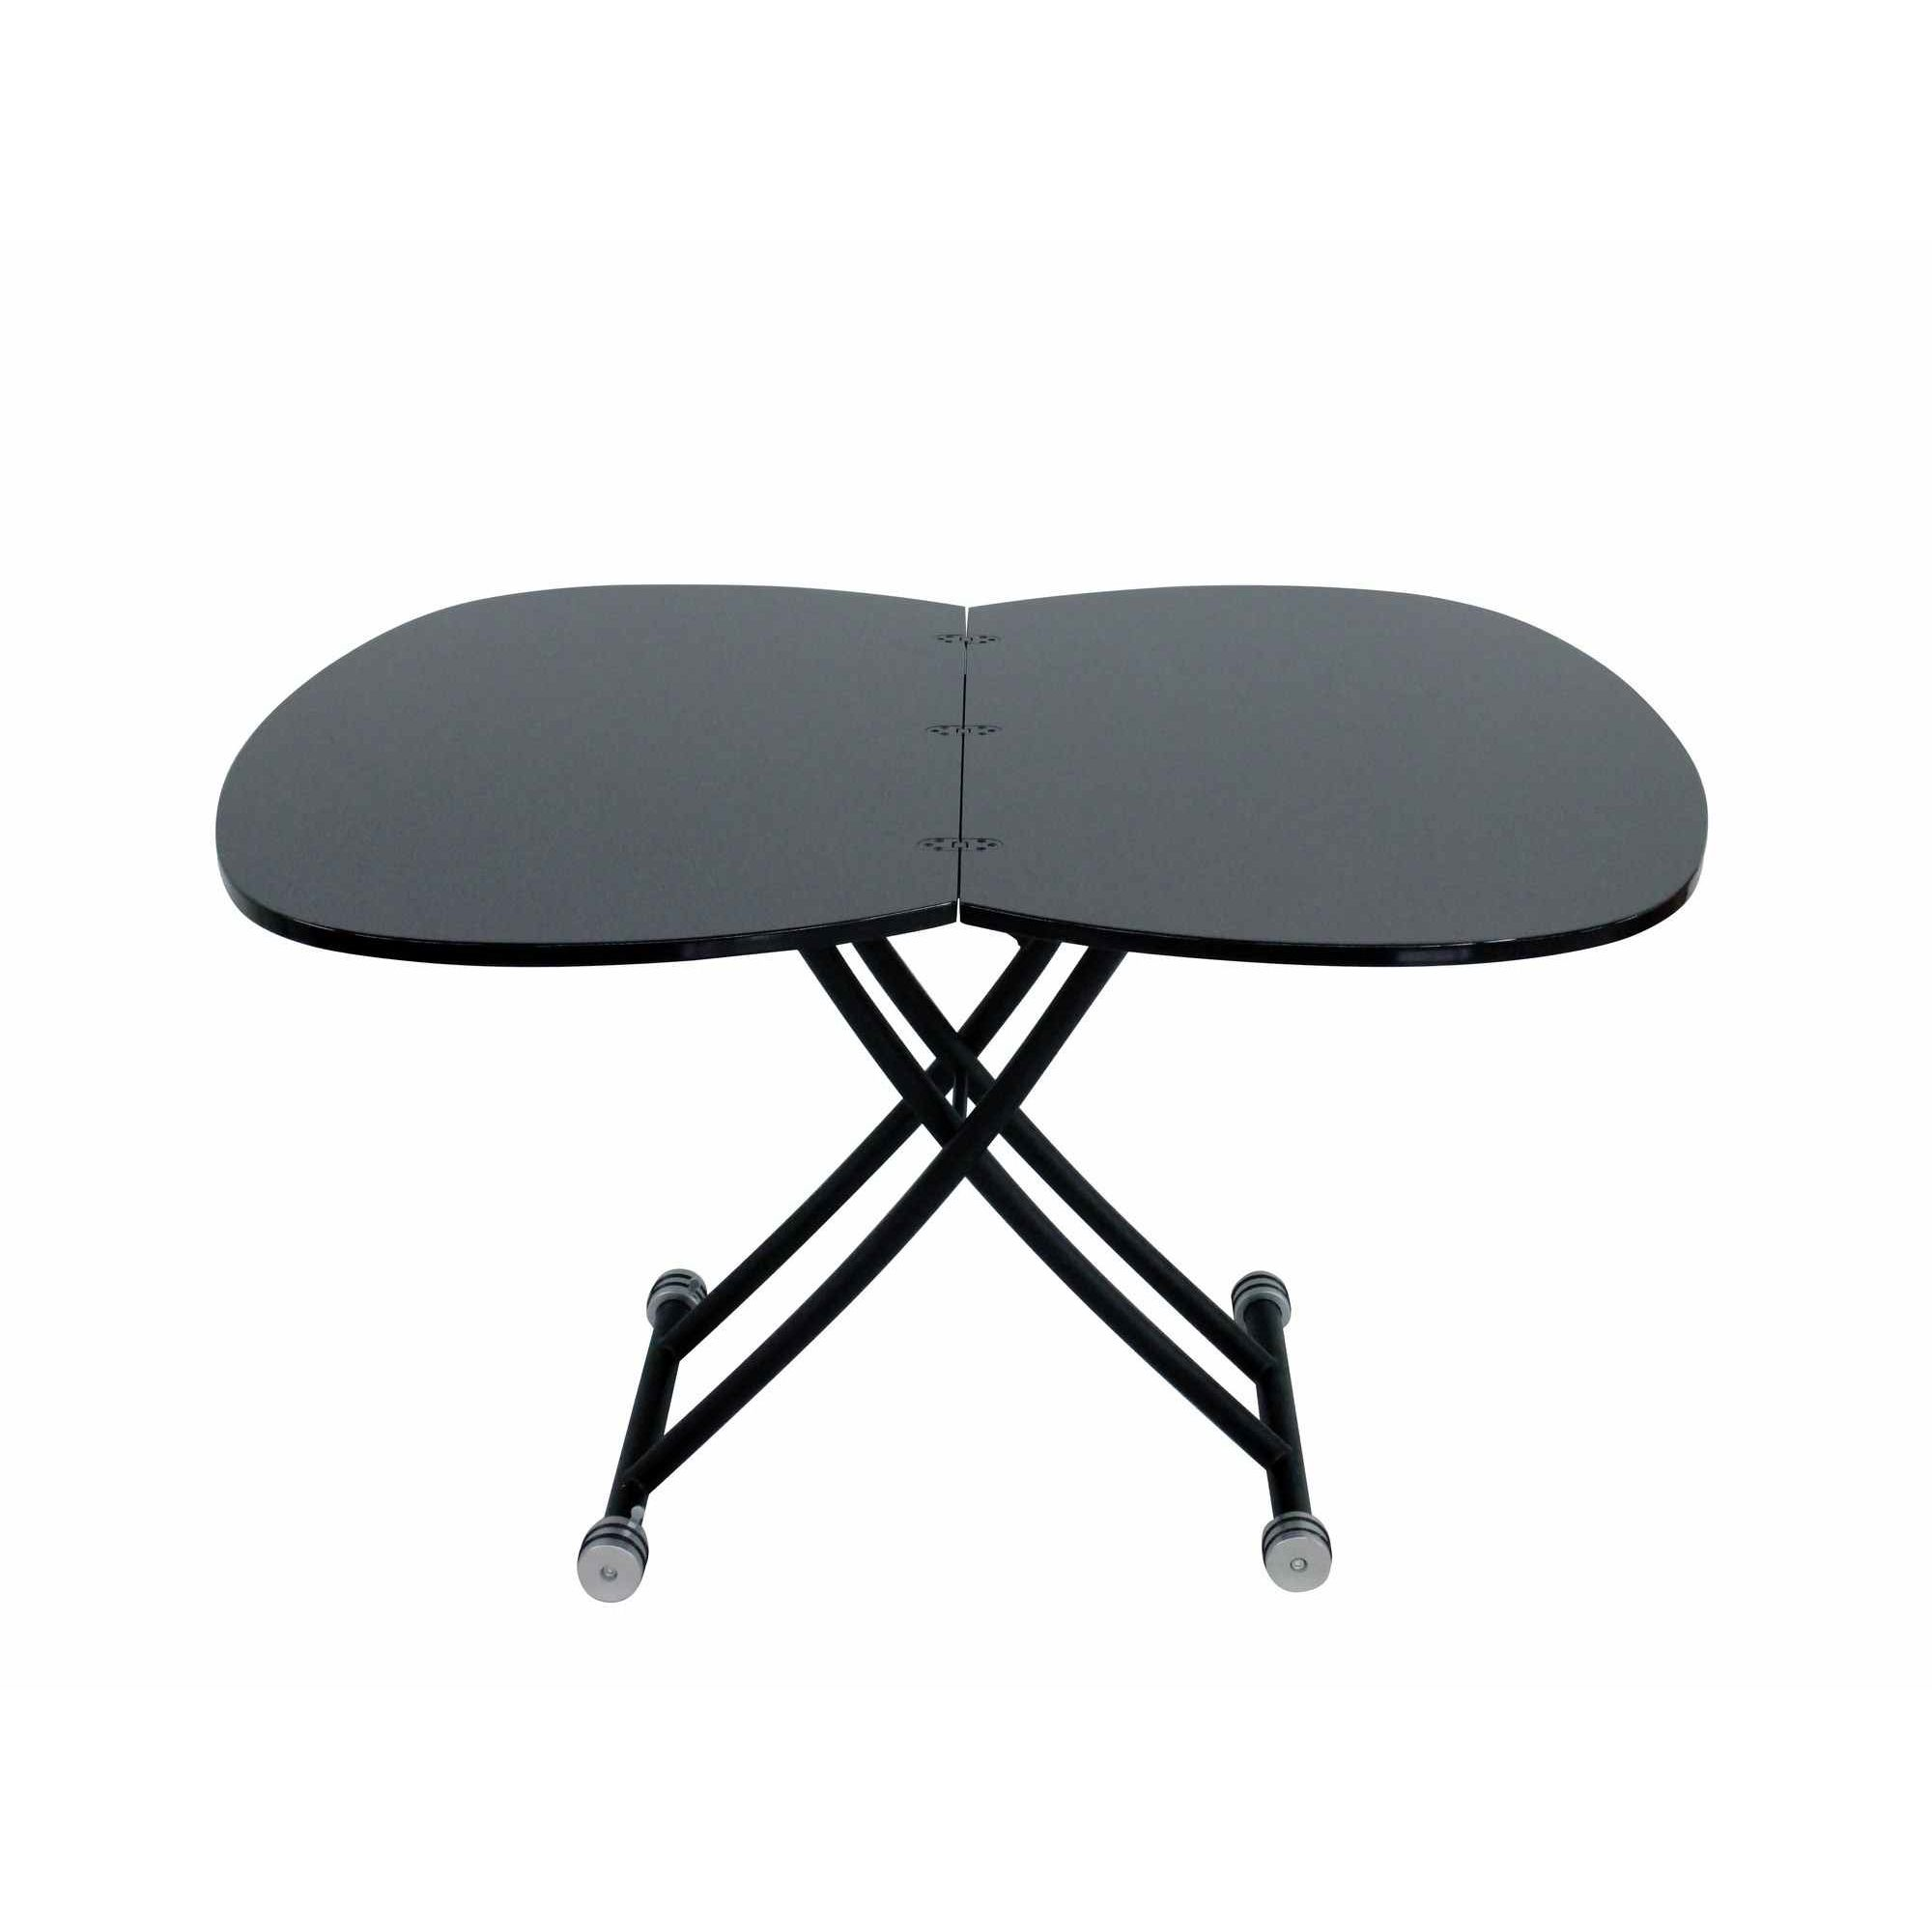 deco in paris table basse relevable a rallonge laque. Black Bedroom Furniture Sets. Home Design Ideas